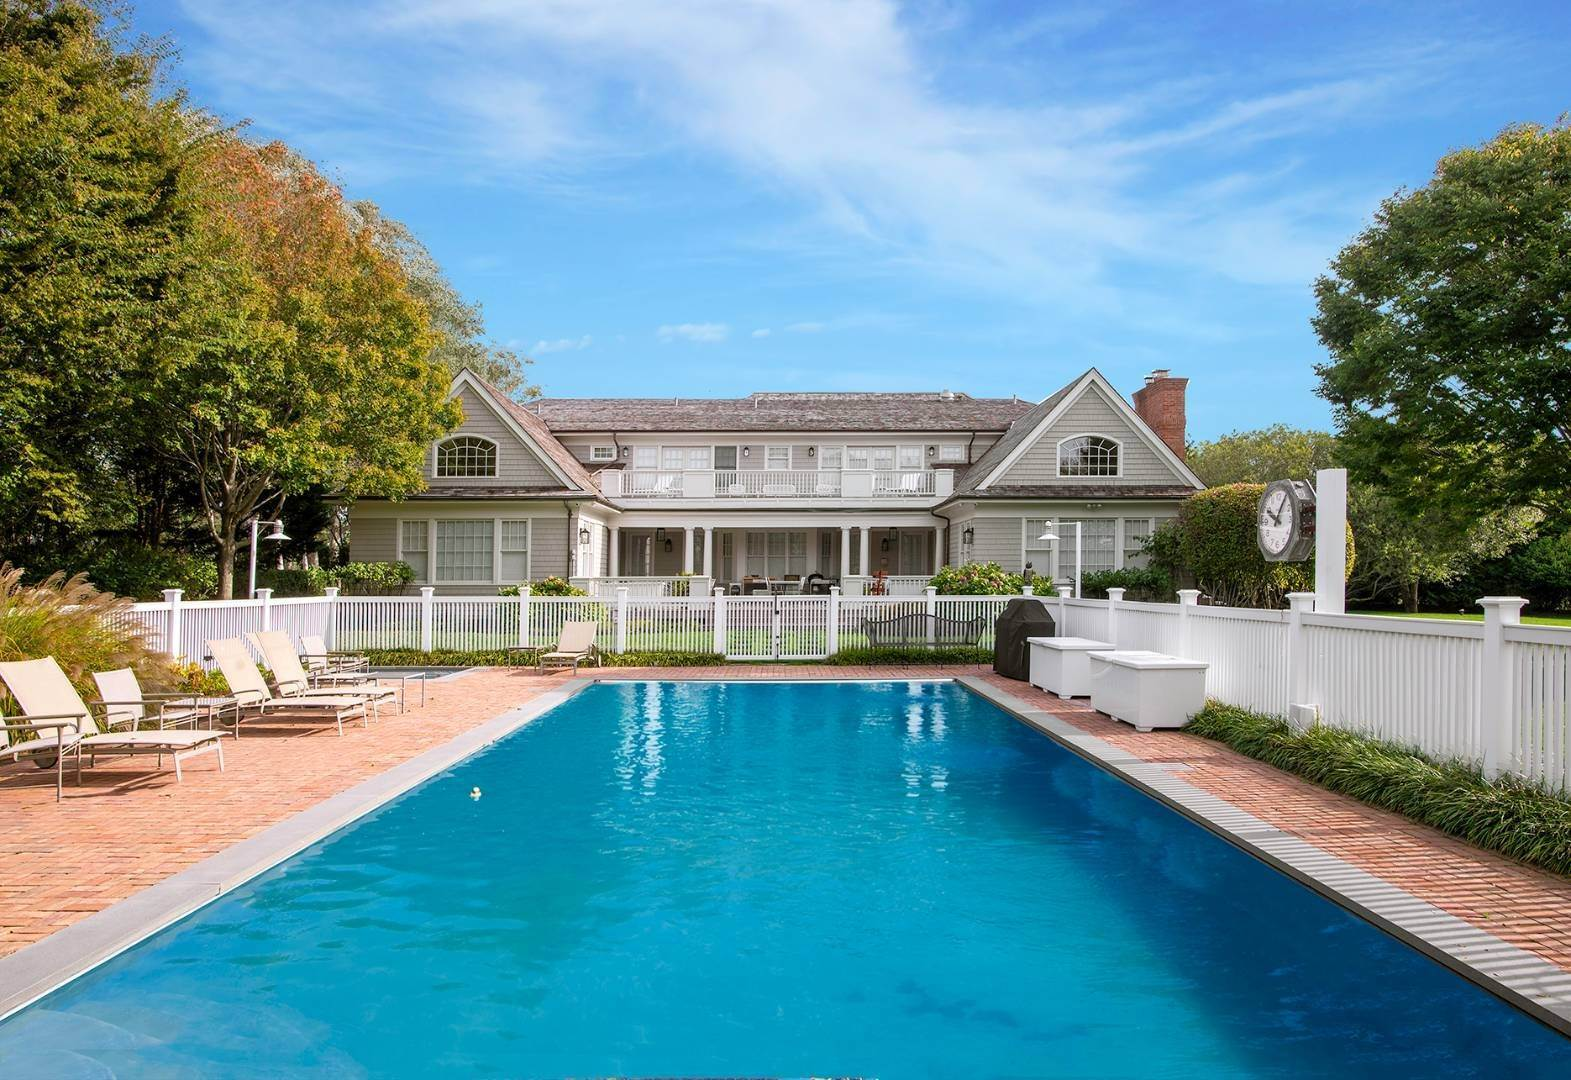 2. Single Family Home at Sagaponack Sagaponack Village, NY 11962